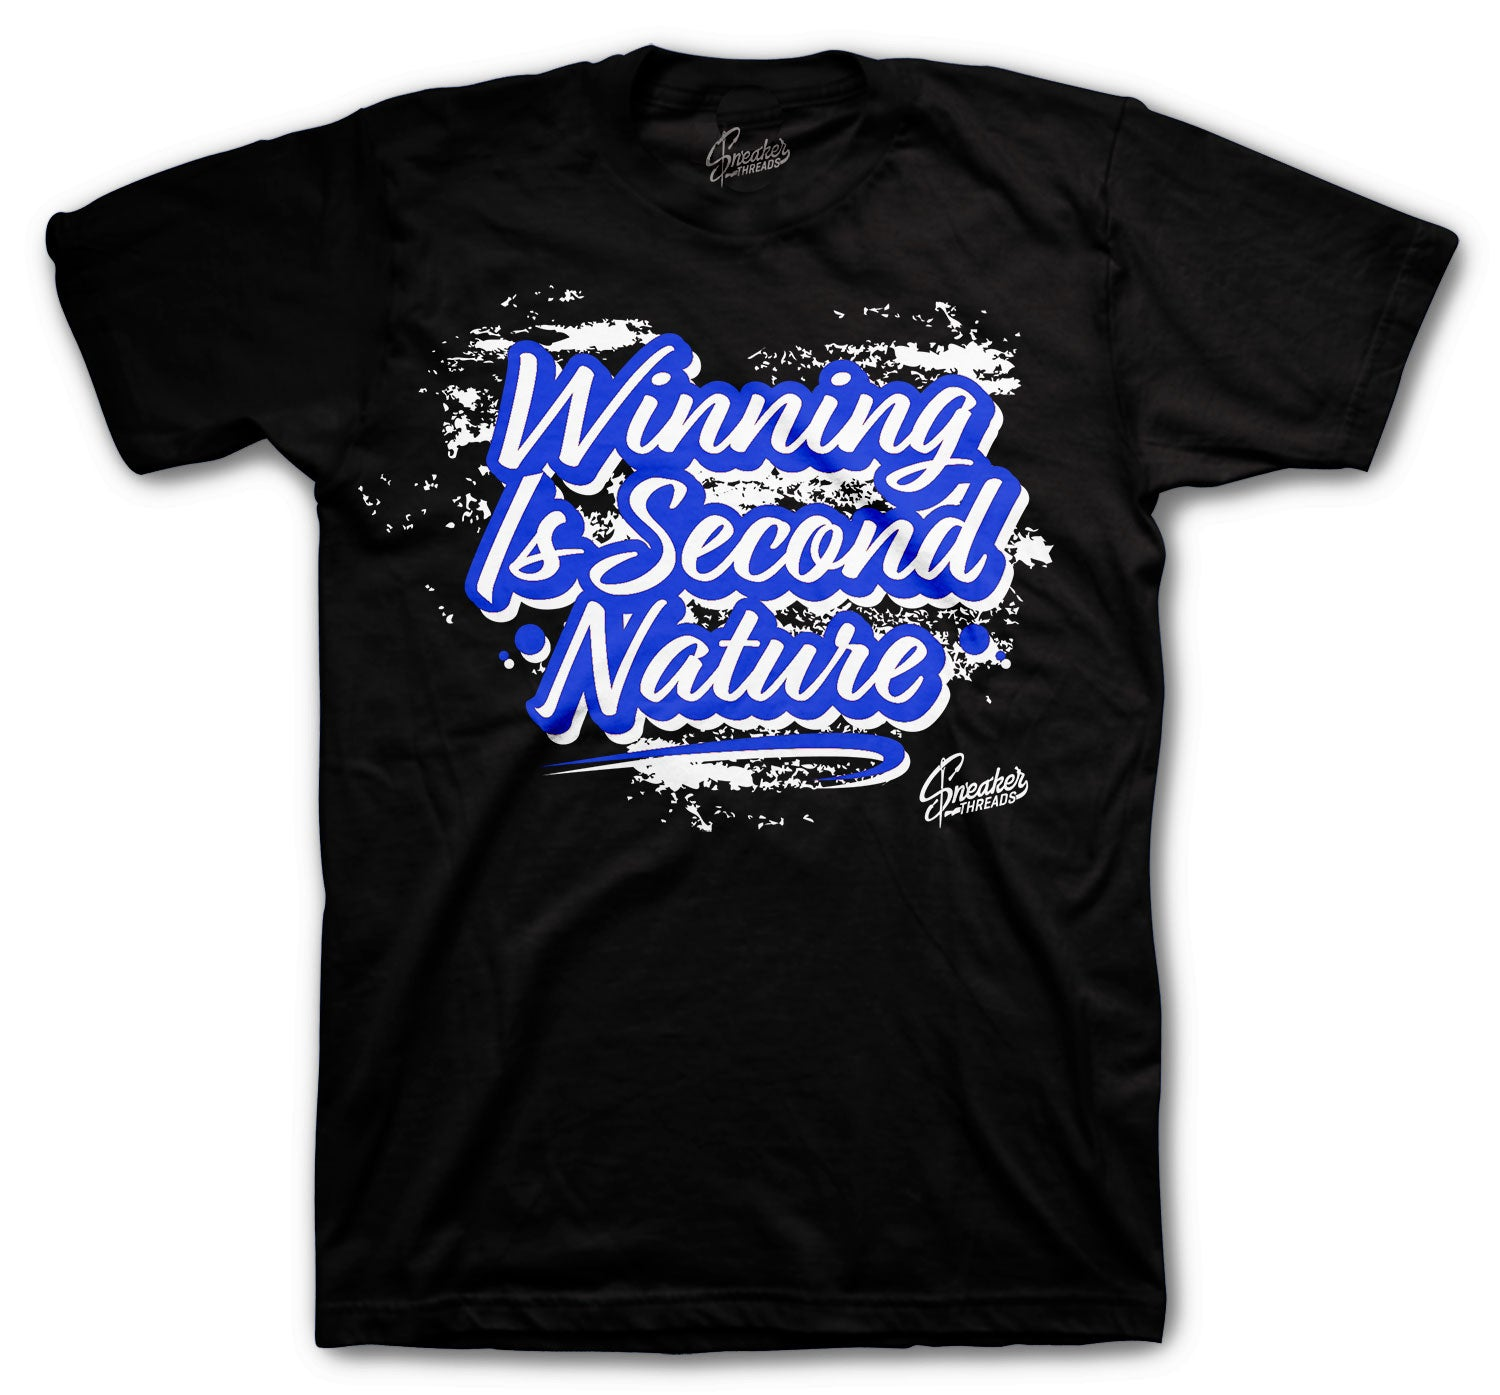 Jordan 14 Hyper Royal Second Nature Shirt